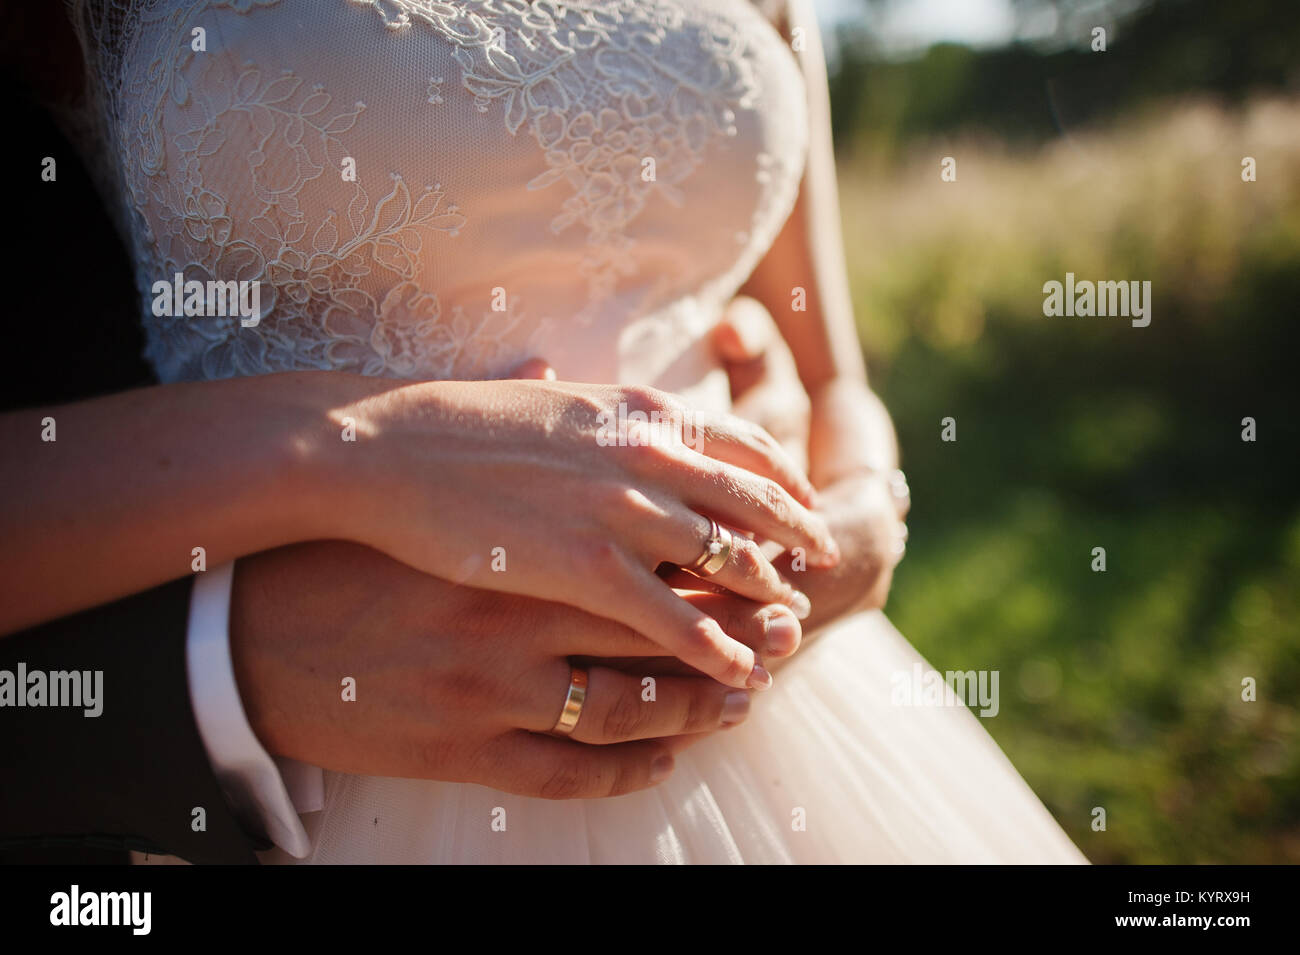 Romantic Wedding Couple Hugging And Holding Hands In The Countryside Stock Photo Alamy